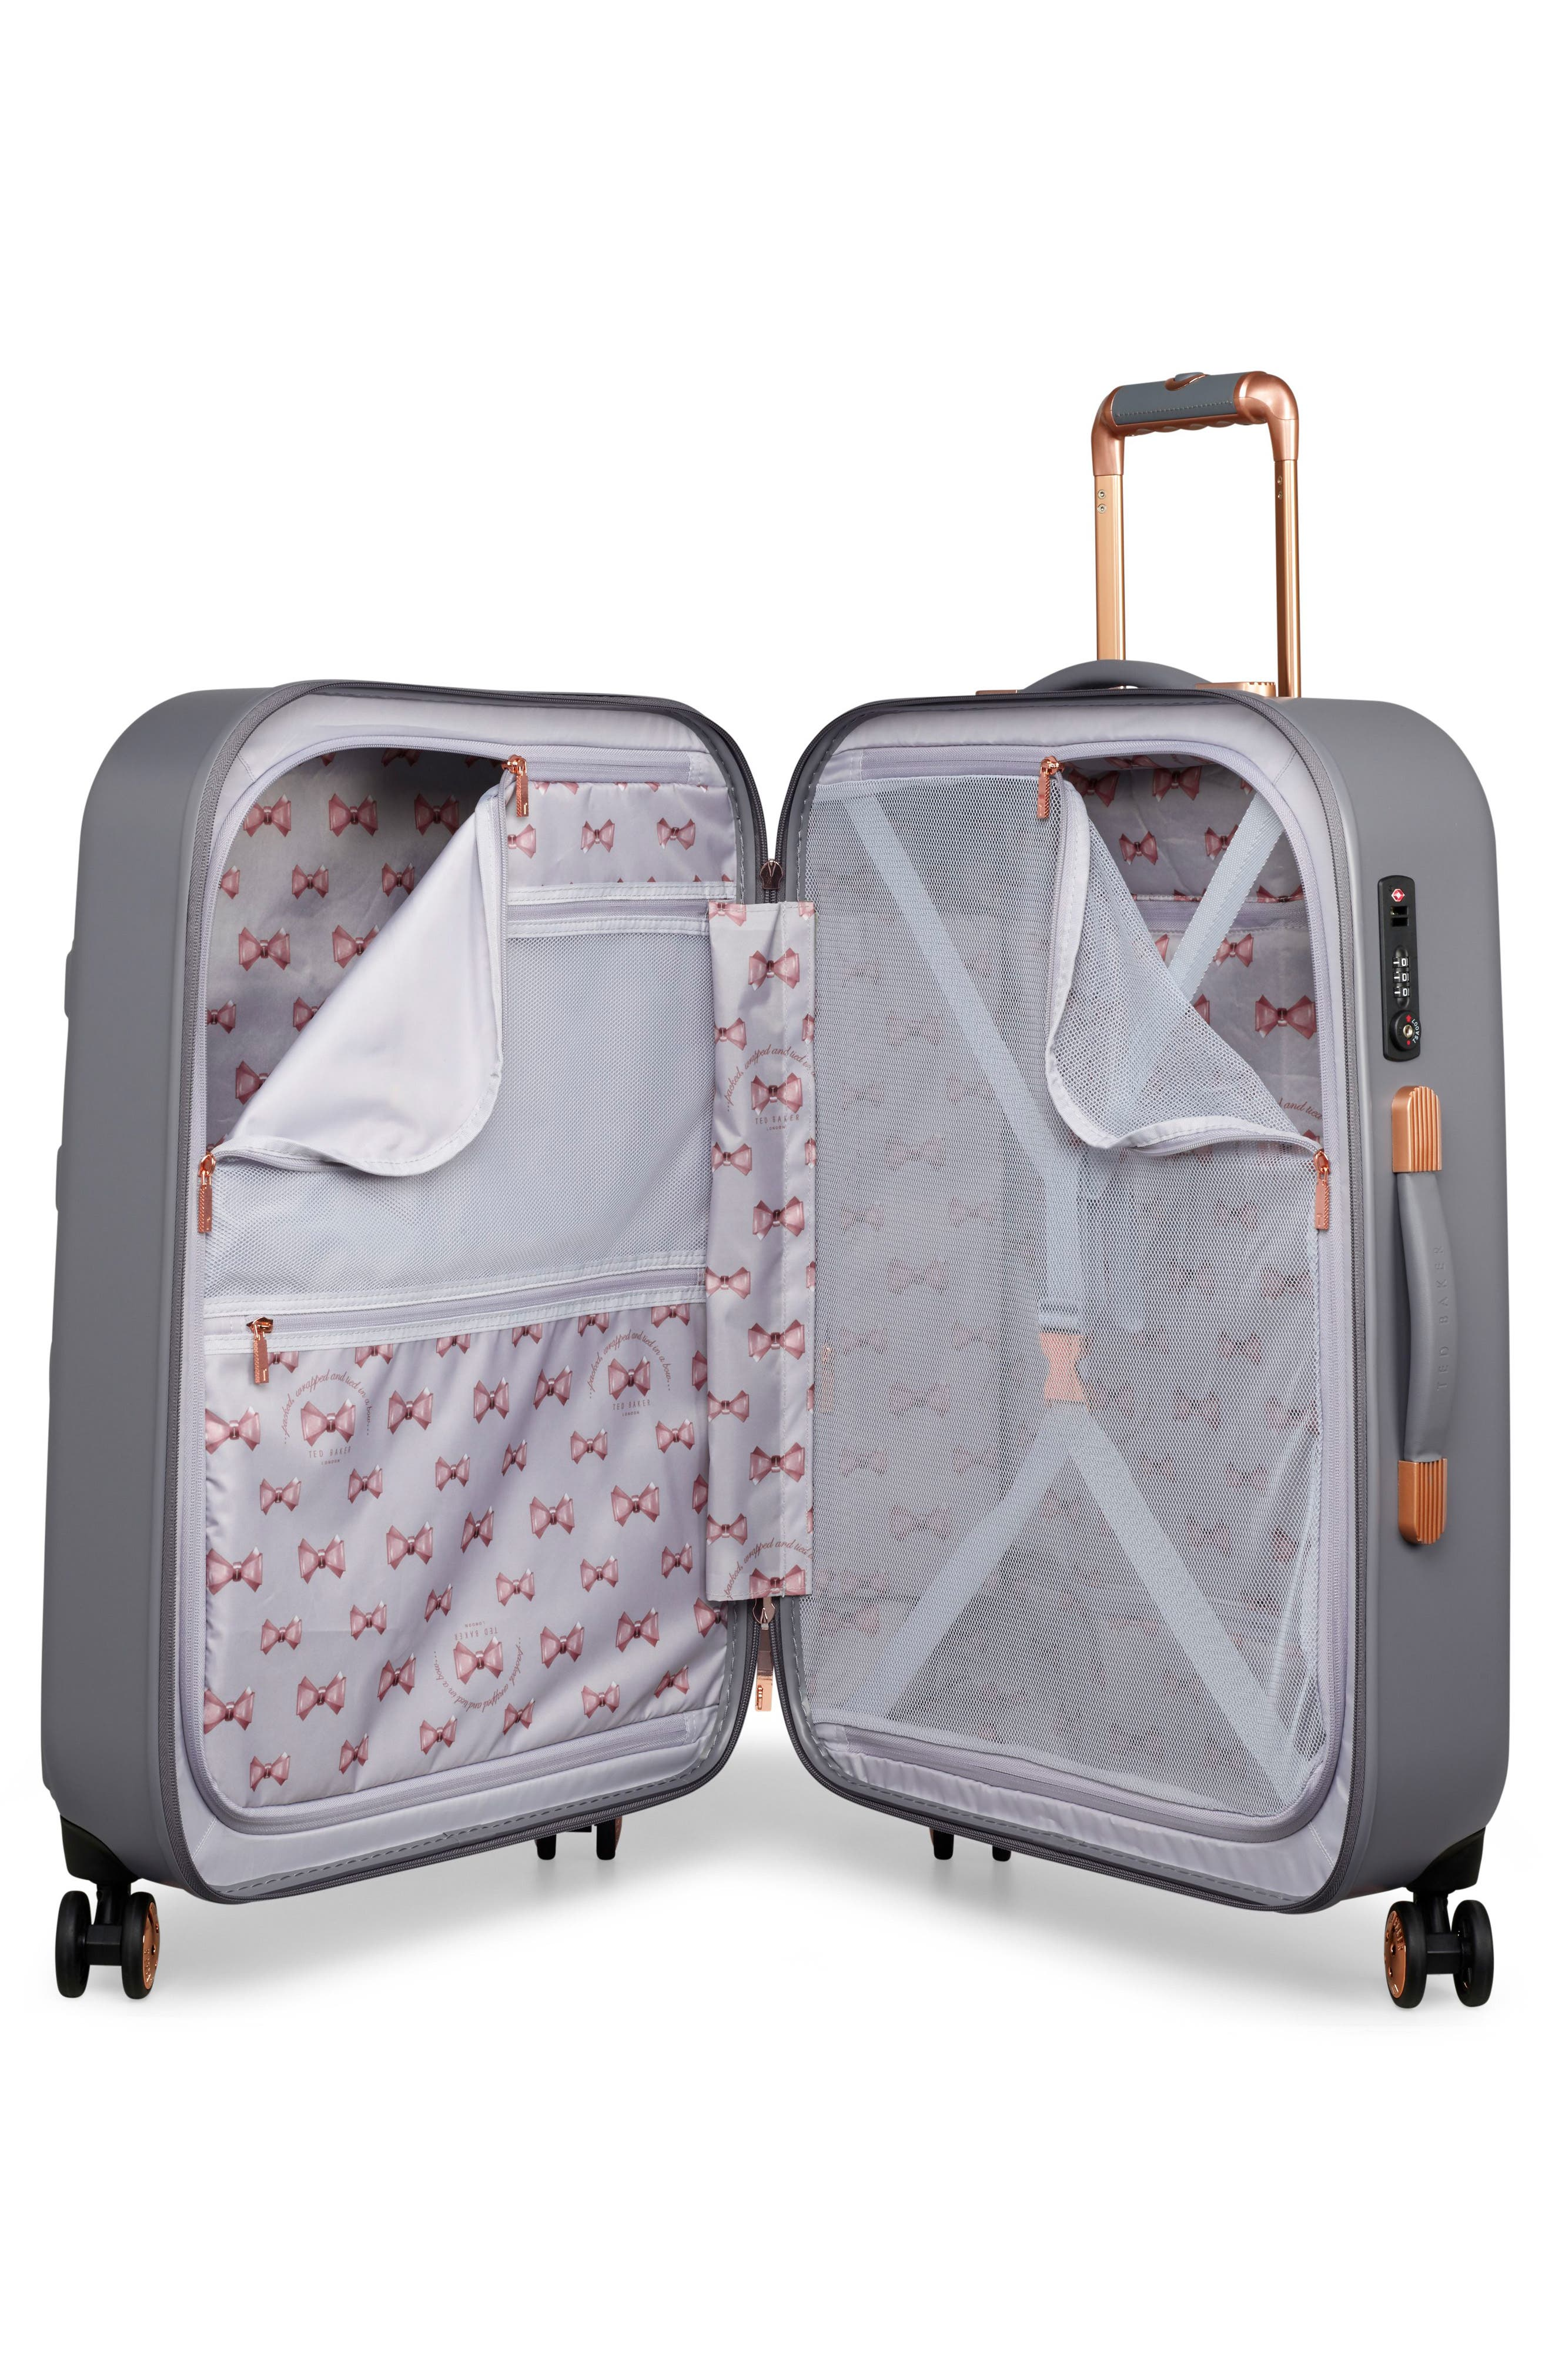 95b401e98a32 ted baker luggage